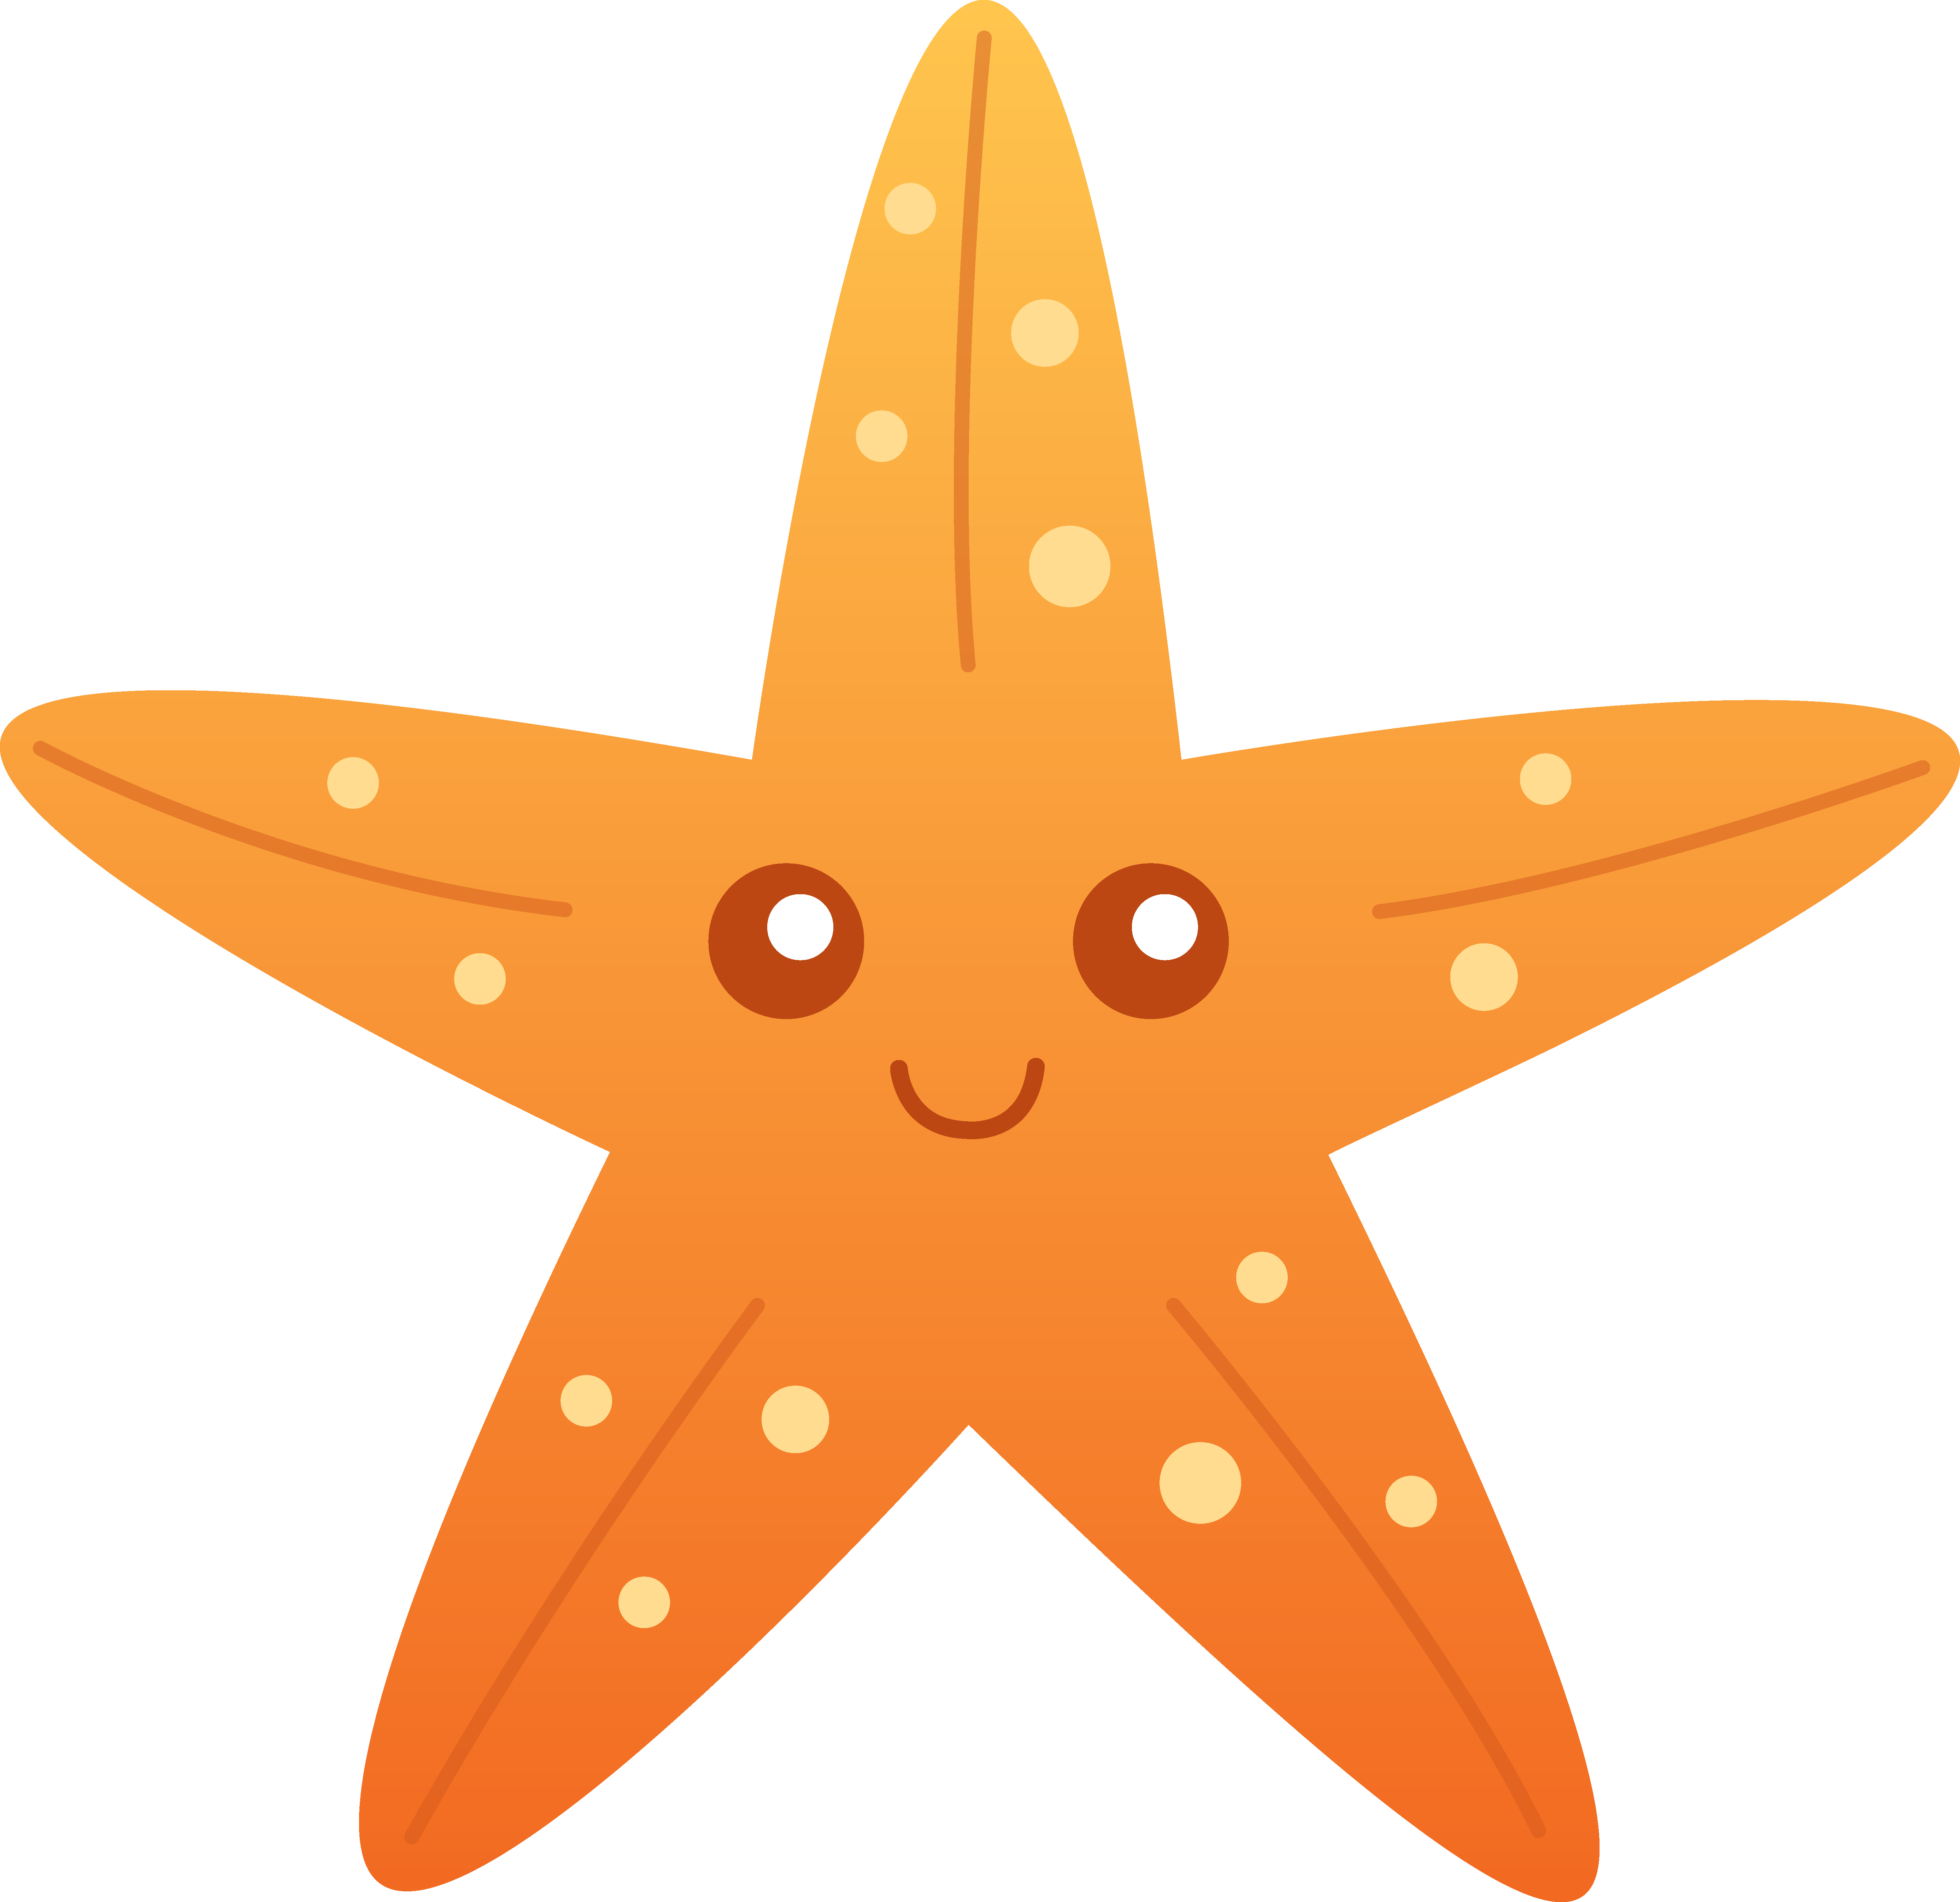 Starfish clipart #4, Download drawings